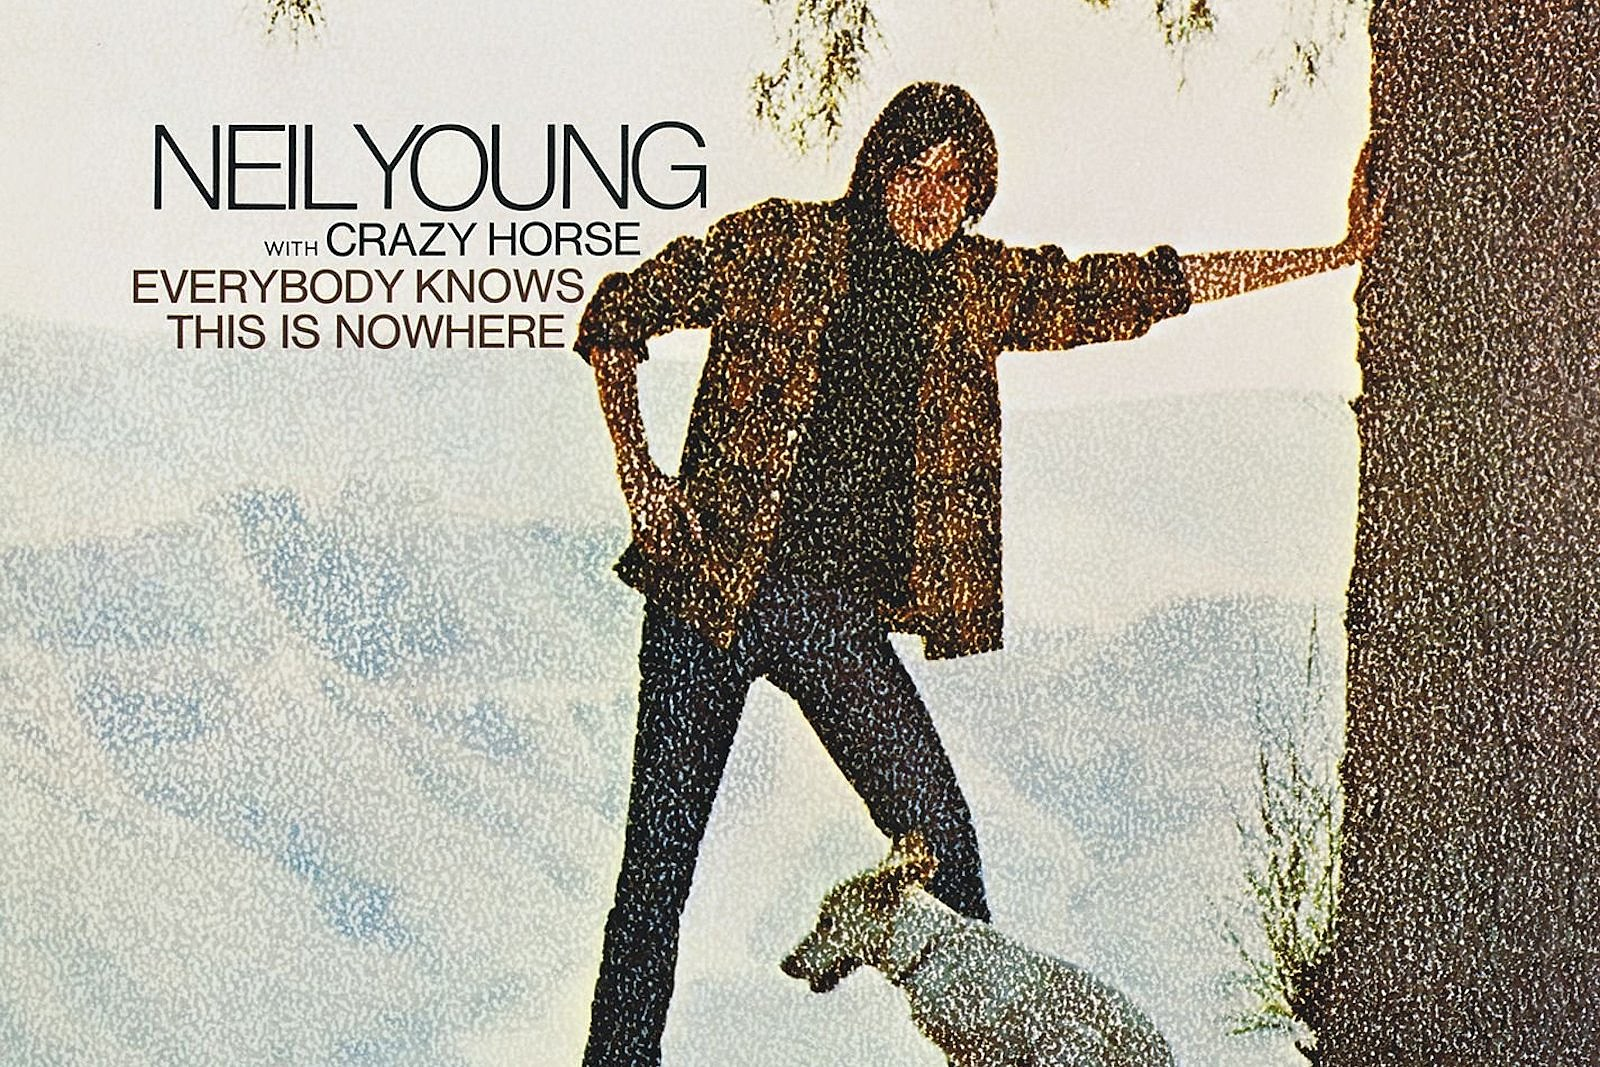 50 Years Ago: Crazy Horse Debut on Neil Young's 'Everybody Knows This Is Nowhere'